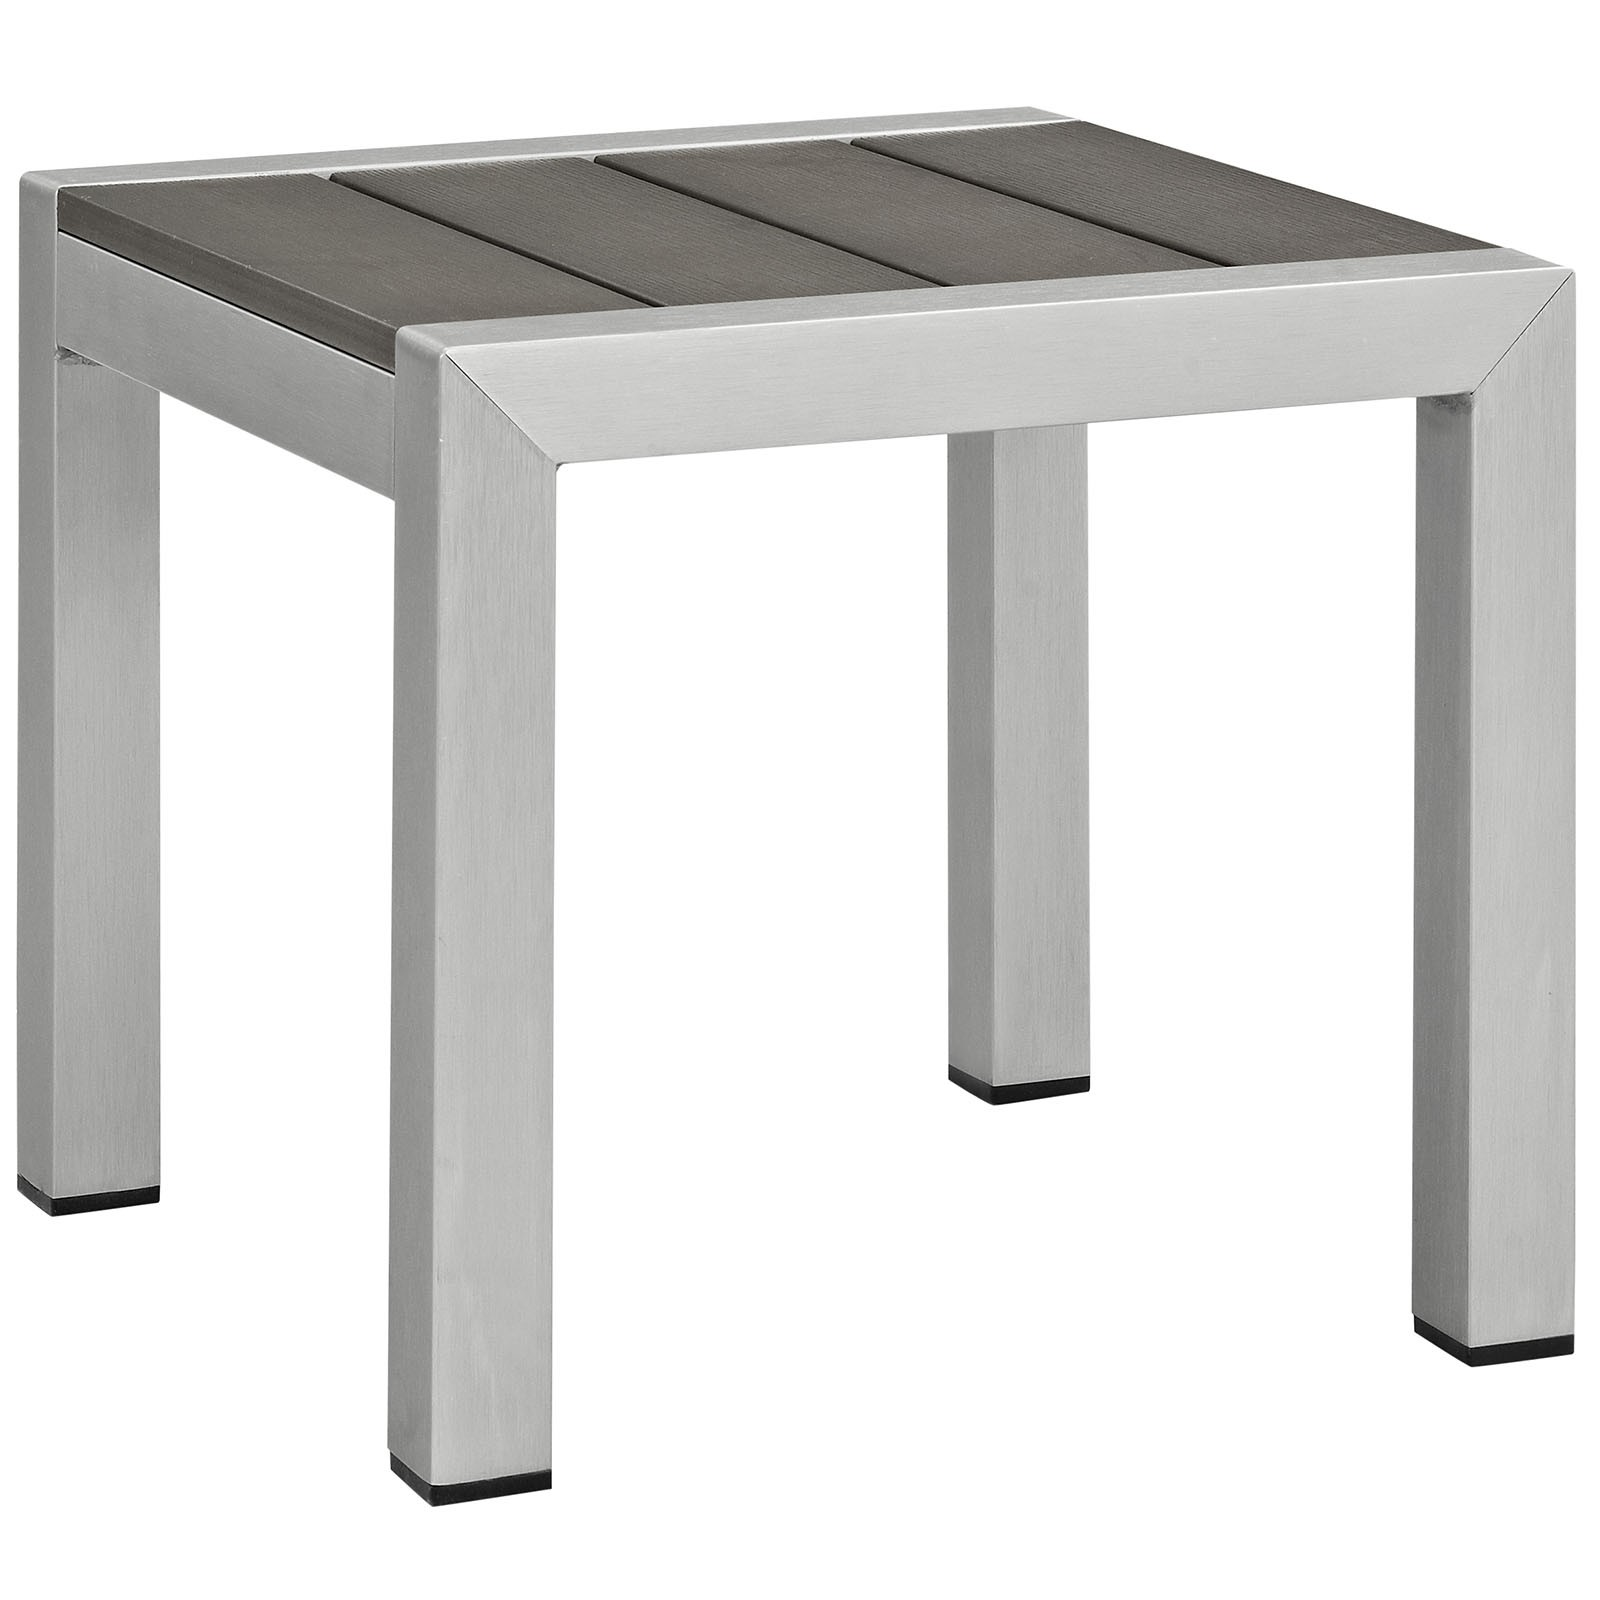 Shore Outdoor Patio Aluminum Side Table